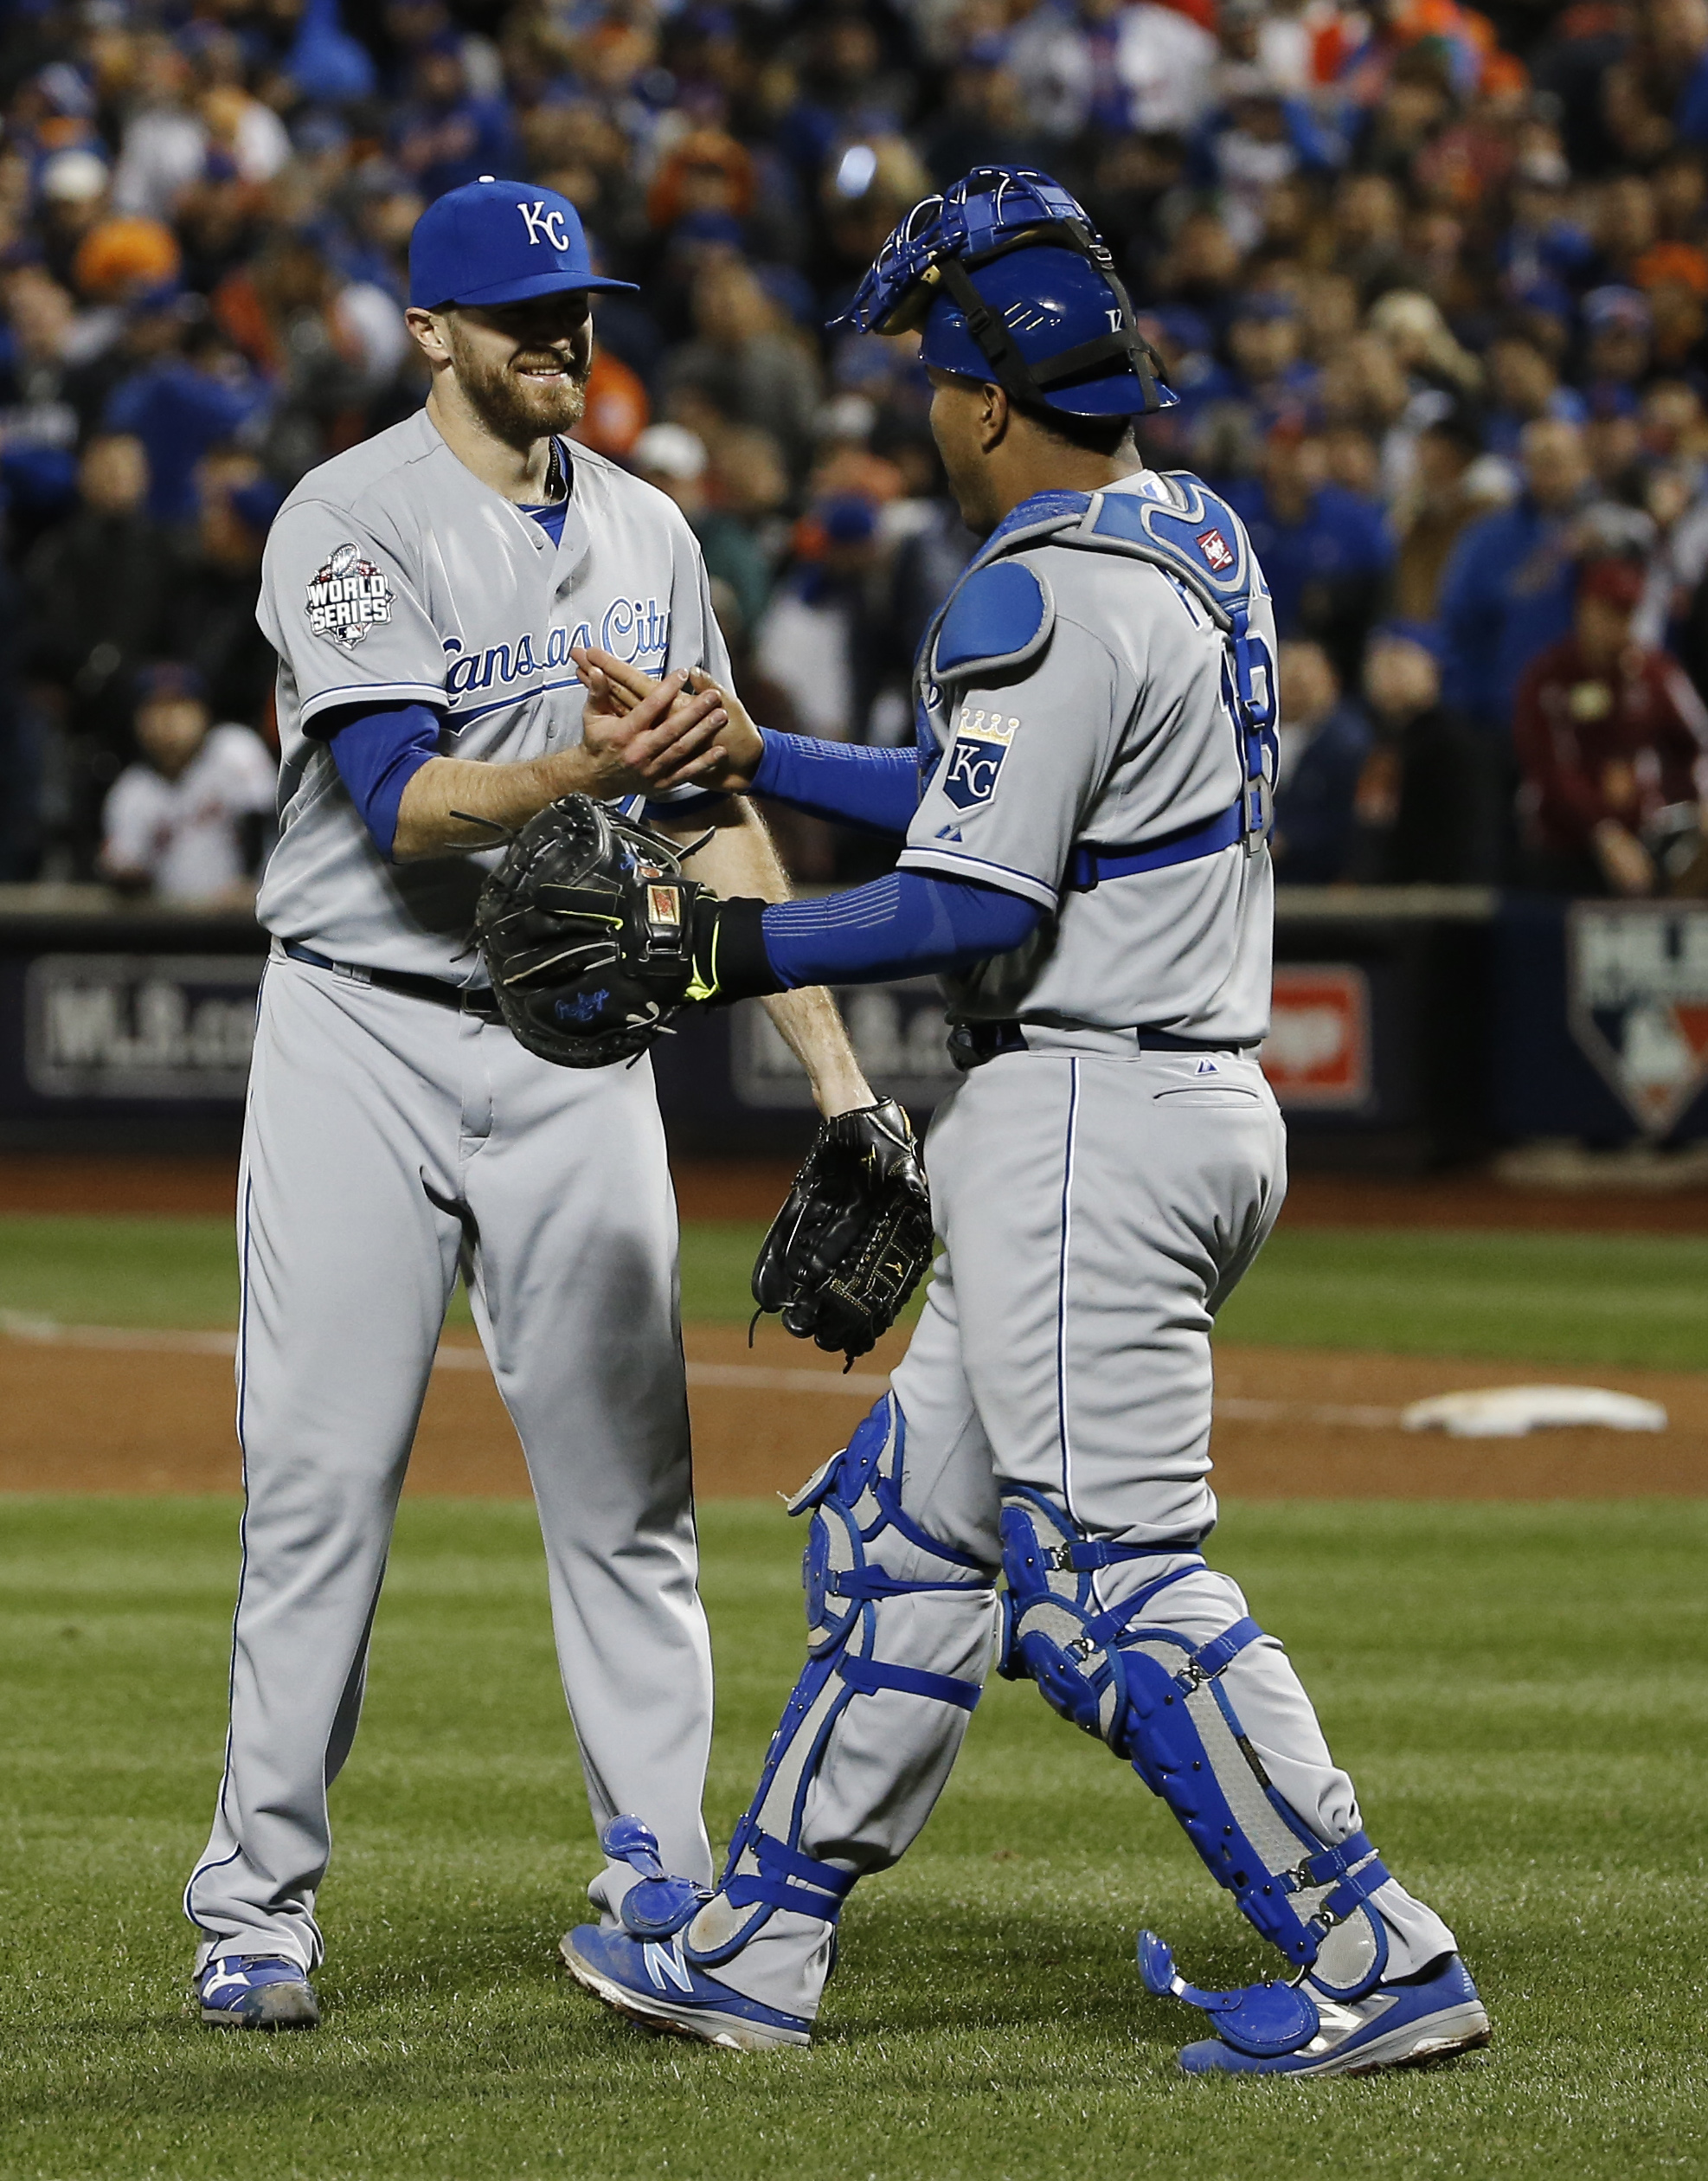 Kansas City Royals pitcher Wade Davis is congratulated by catcher Salvador Perez after winning Game 4 of the Major League Baseball World Series Saturday, Oct. 31, 2015, in New York. The Royals won 5-3 to take a 3-0 lead in the series. (AP Photo/Matt Slocu